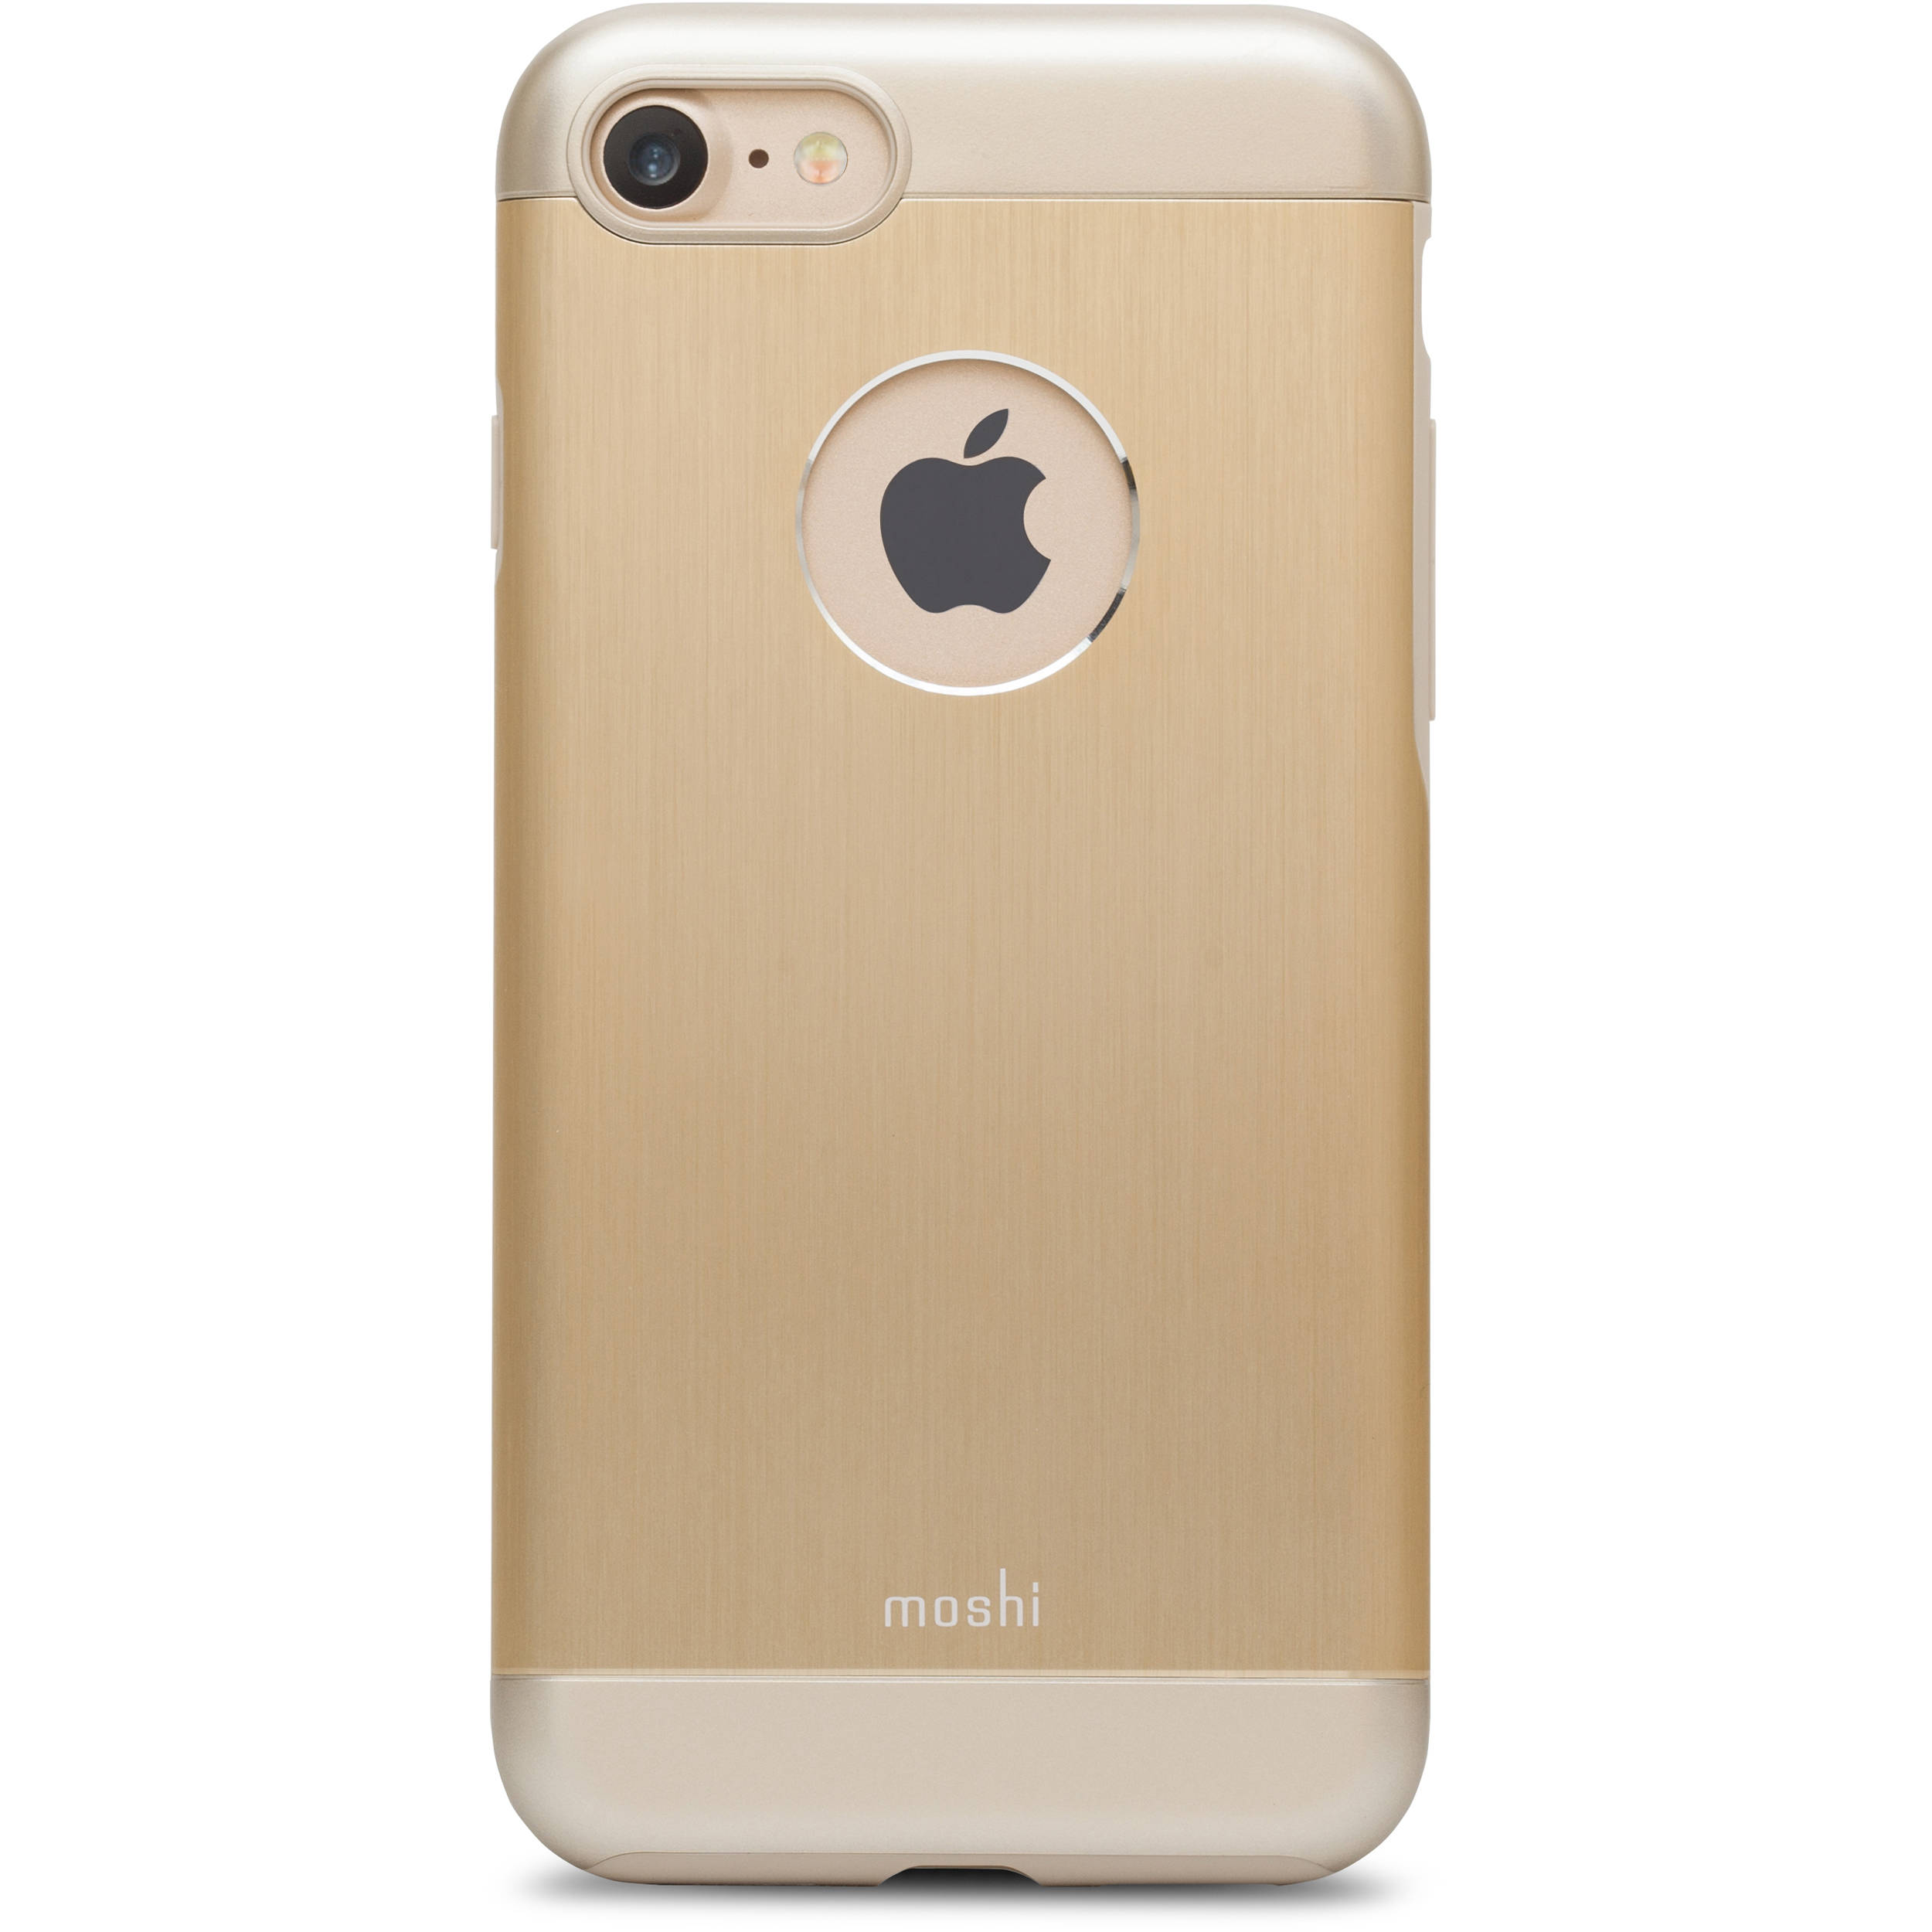 iphone 7 gold moshi armour for iphone 7 gold 99mo088231 b amp h photo 11531